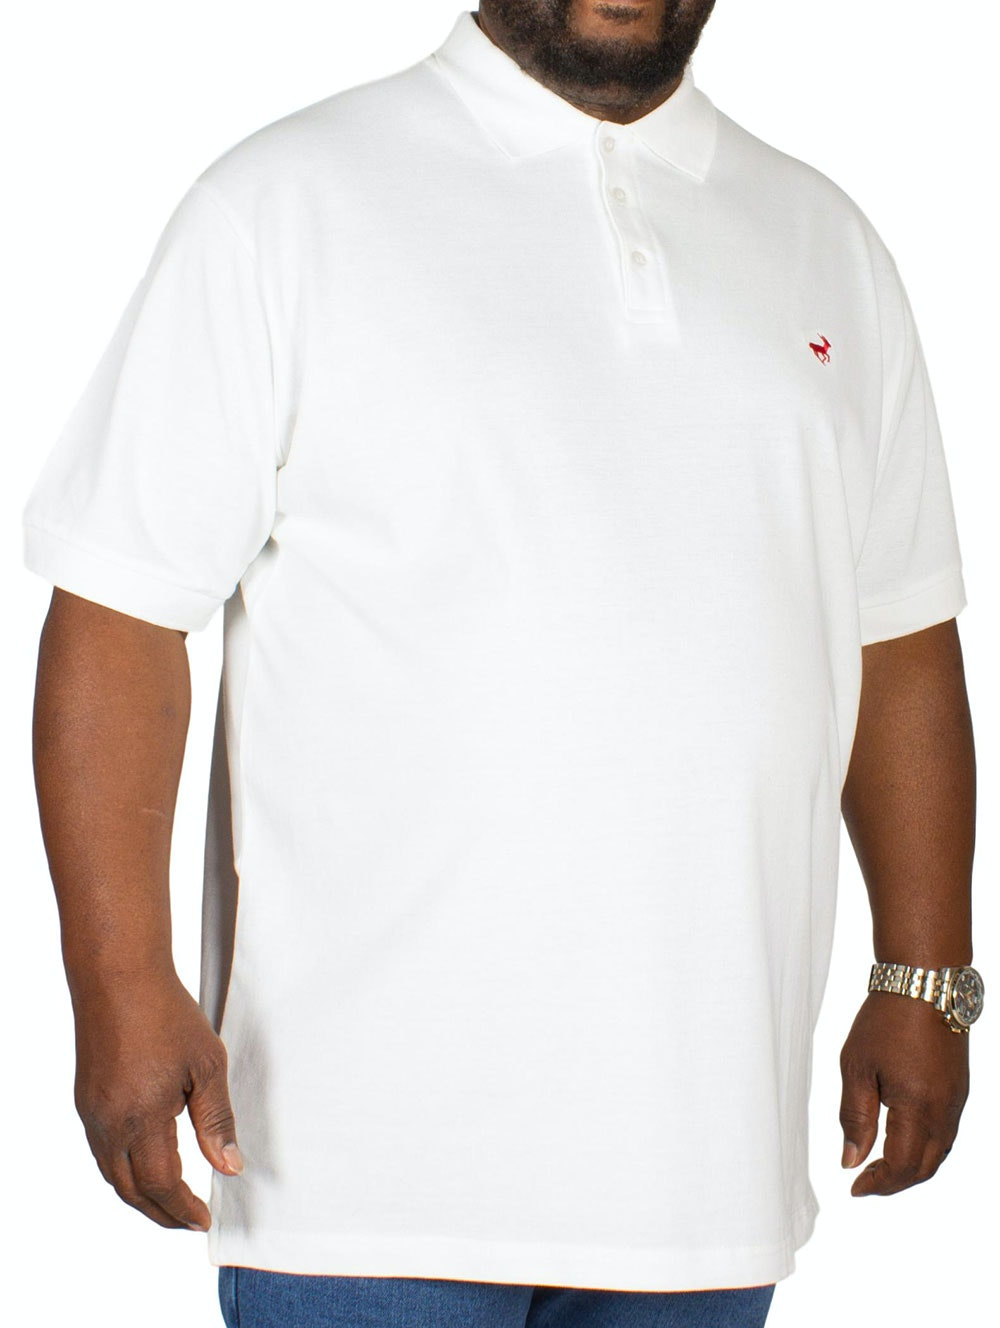 Bigdude Embroidered Polo Shirt White